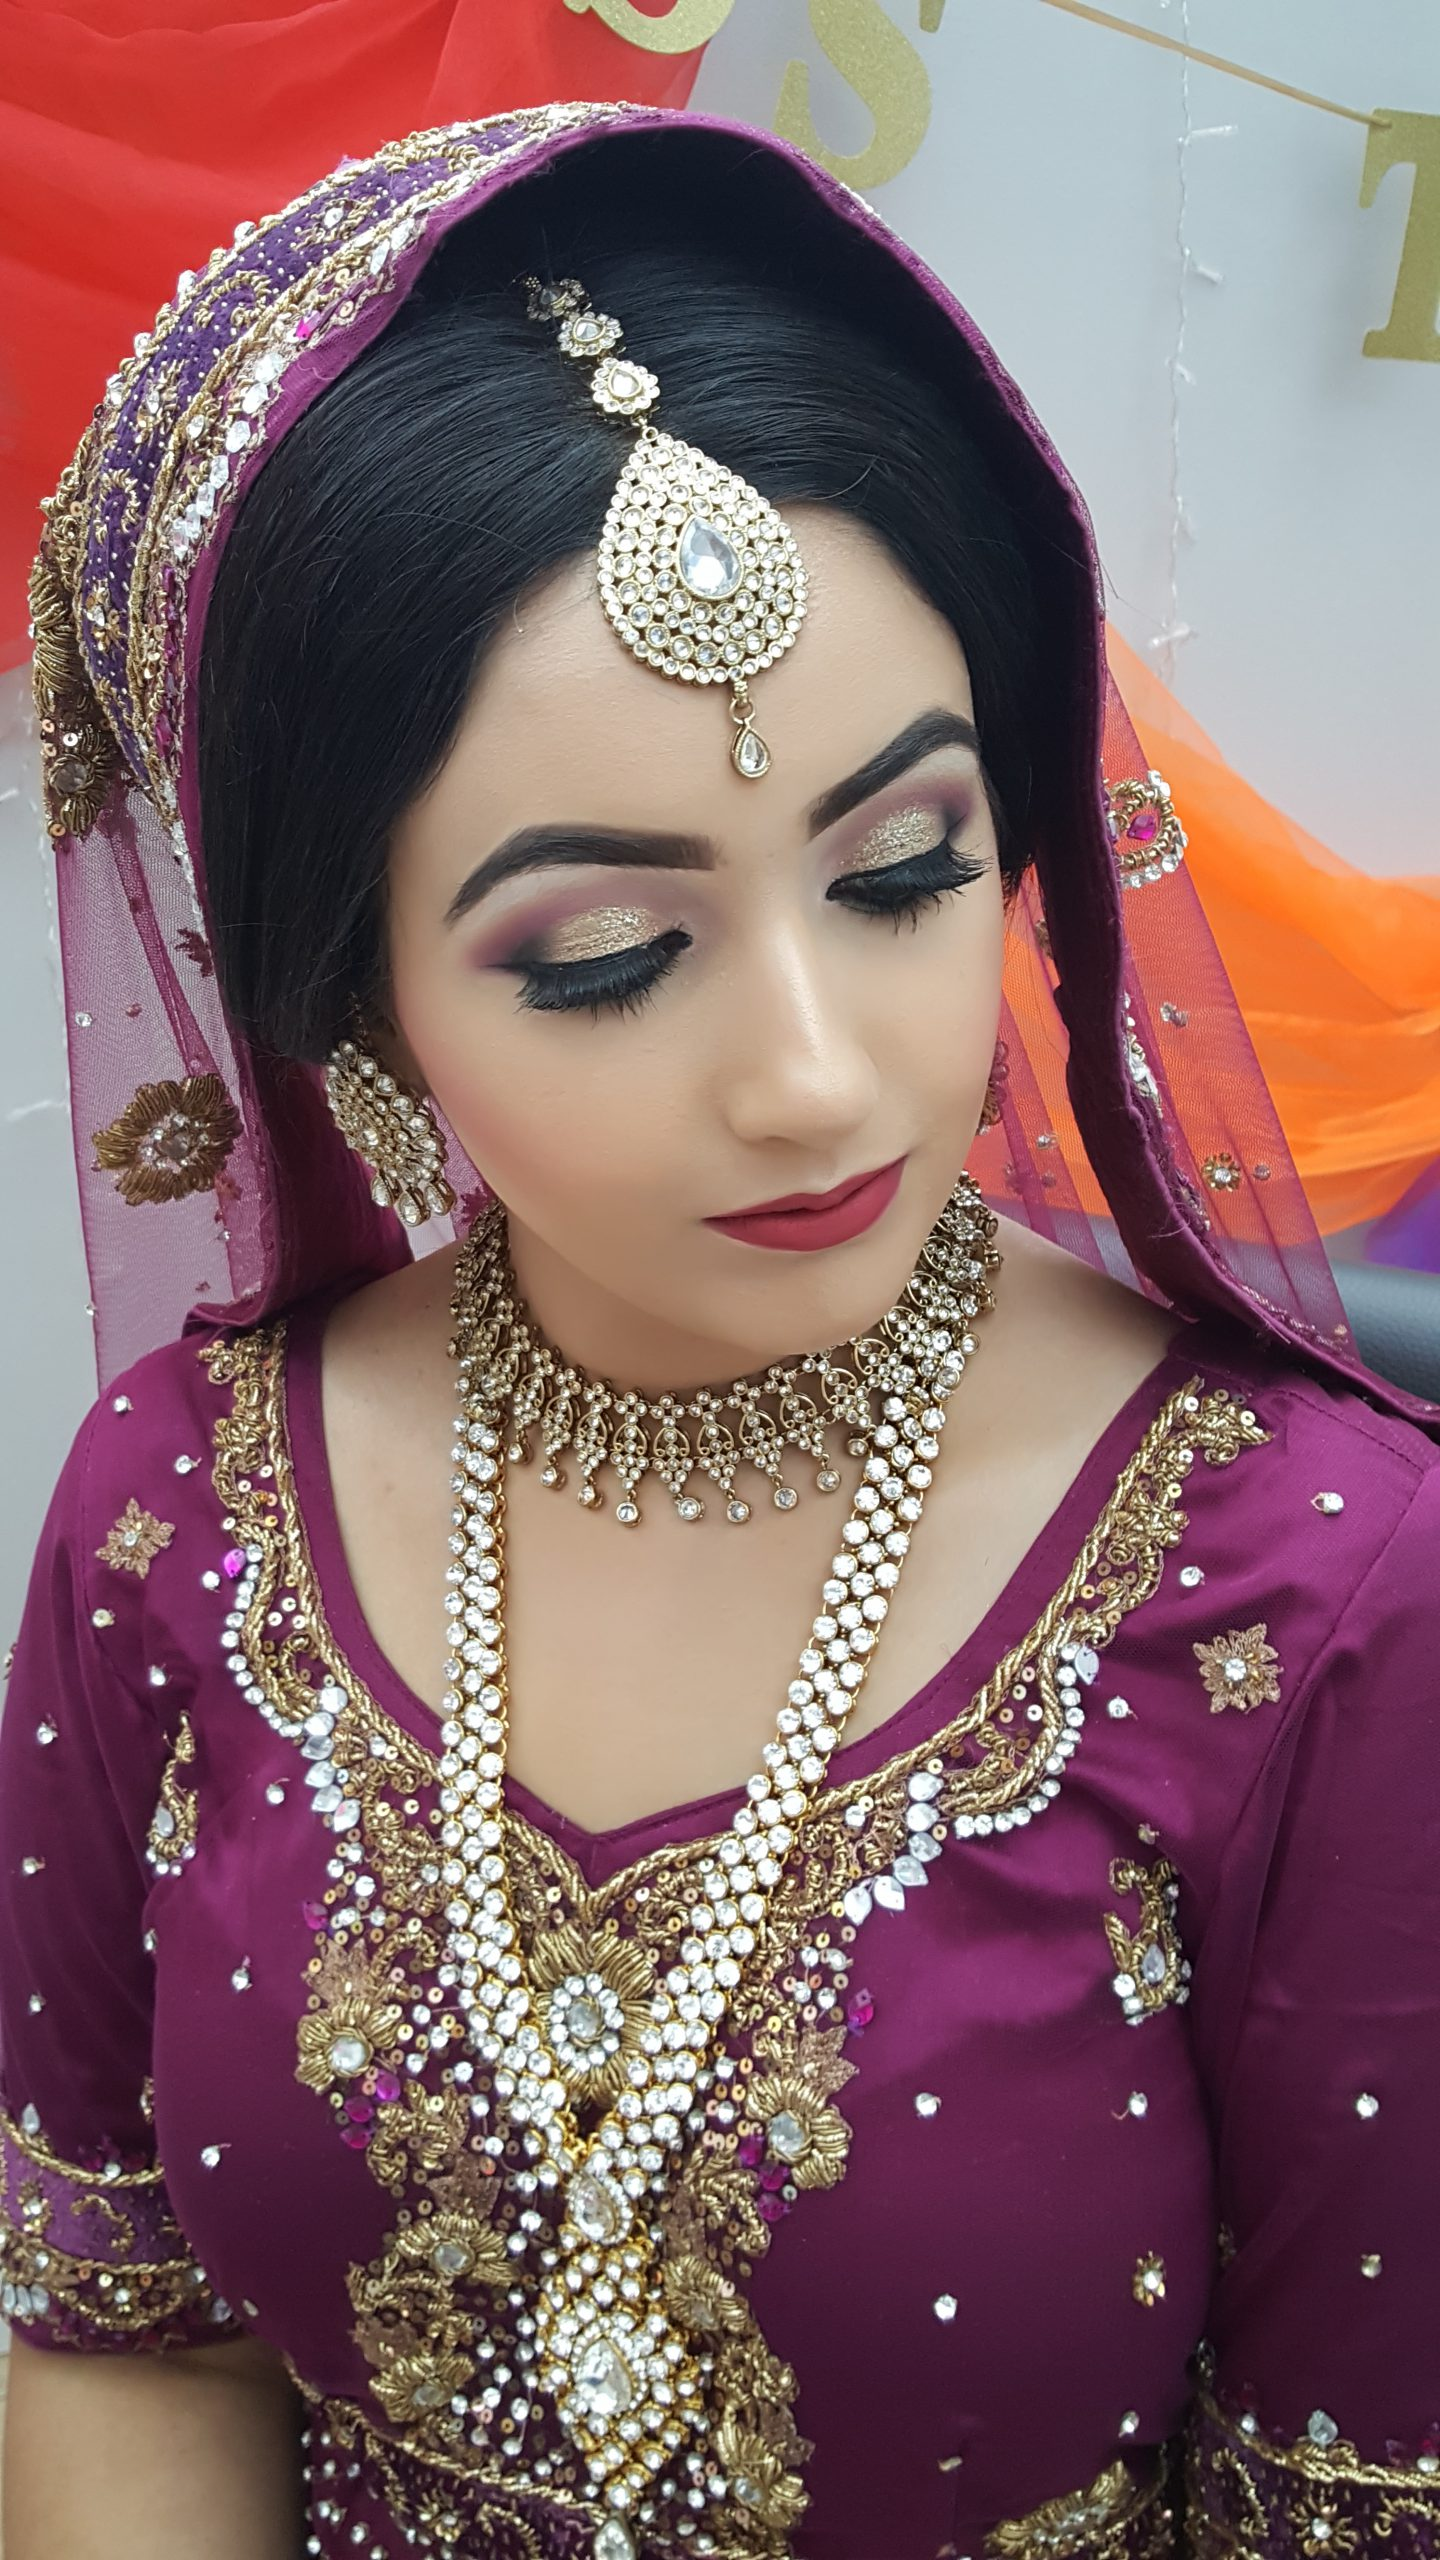 Glow Makeup Asian Bridal Formal Occassions